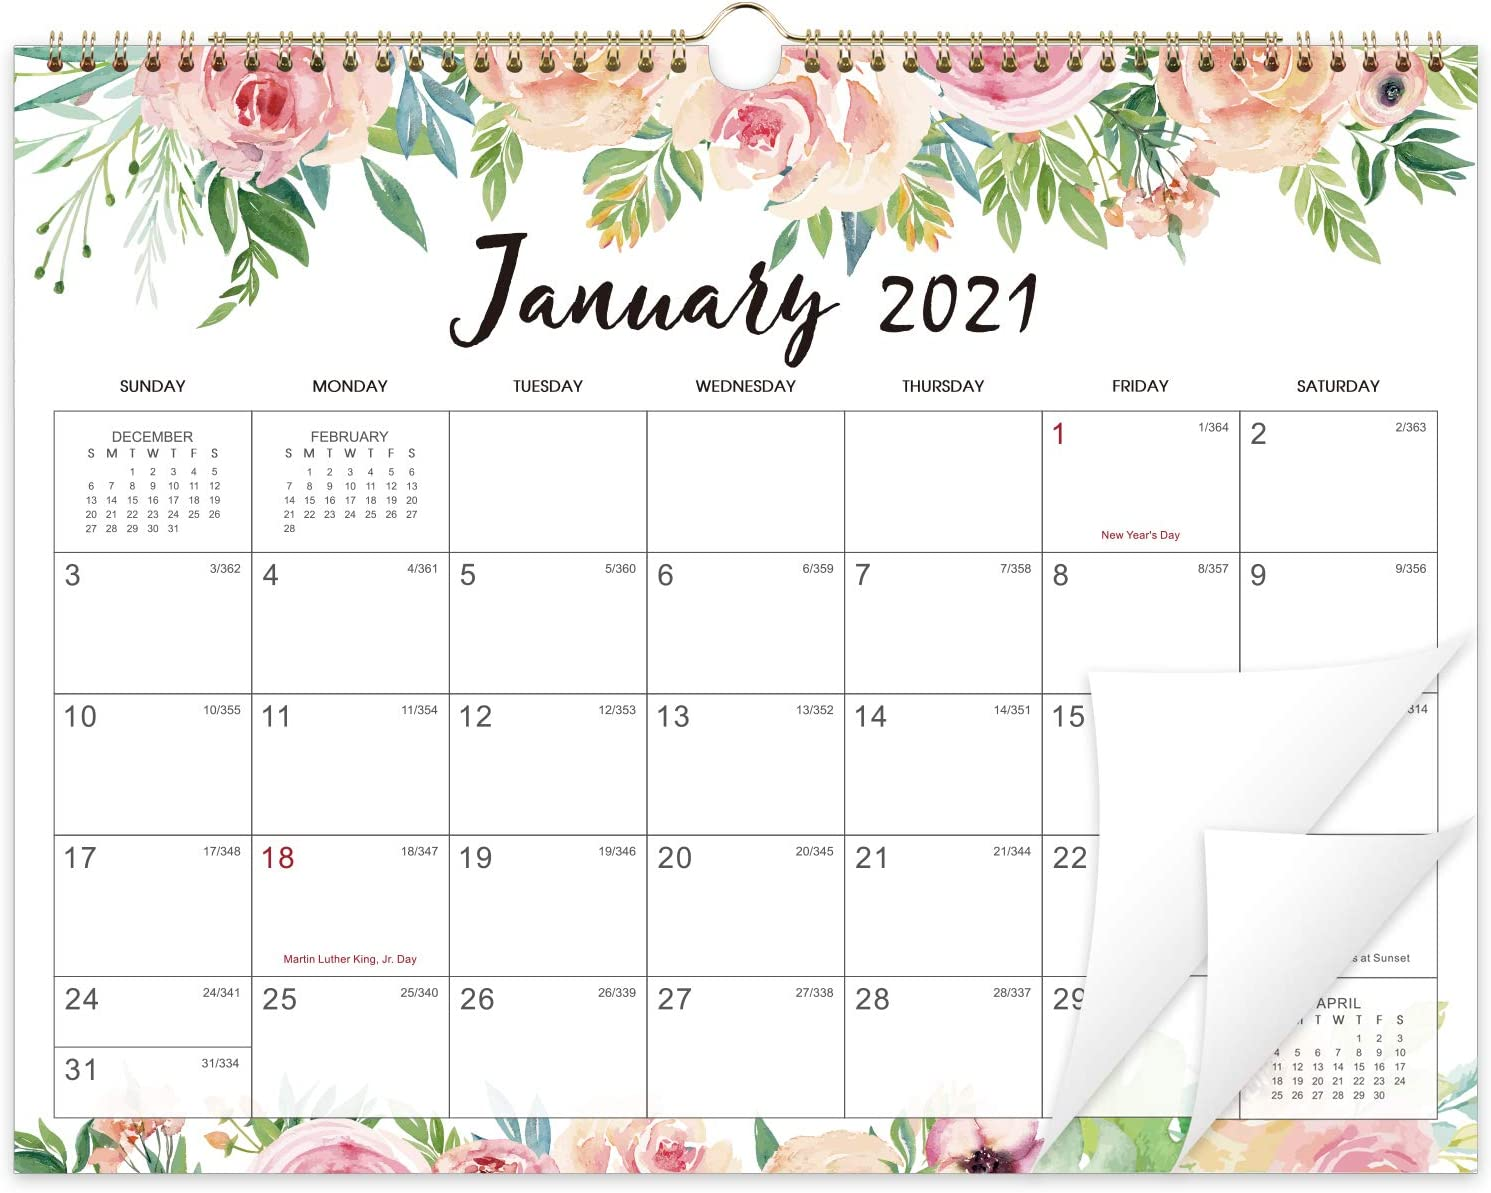 Wall Calendar 2021 - Floral 12 Monthly Wall Calendar,14.6'' x 11.4'', 2021 Yearly Wall Calendar, Twin-Wire Binding, Ruled Blocks with Julian Dates, Perfect for Organizing Your Home and Office